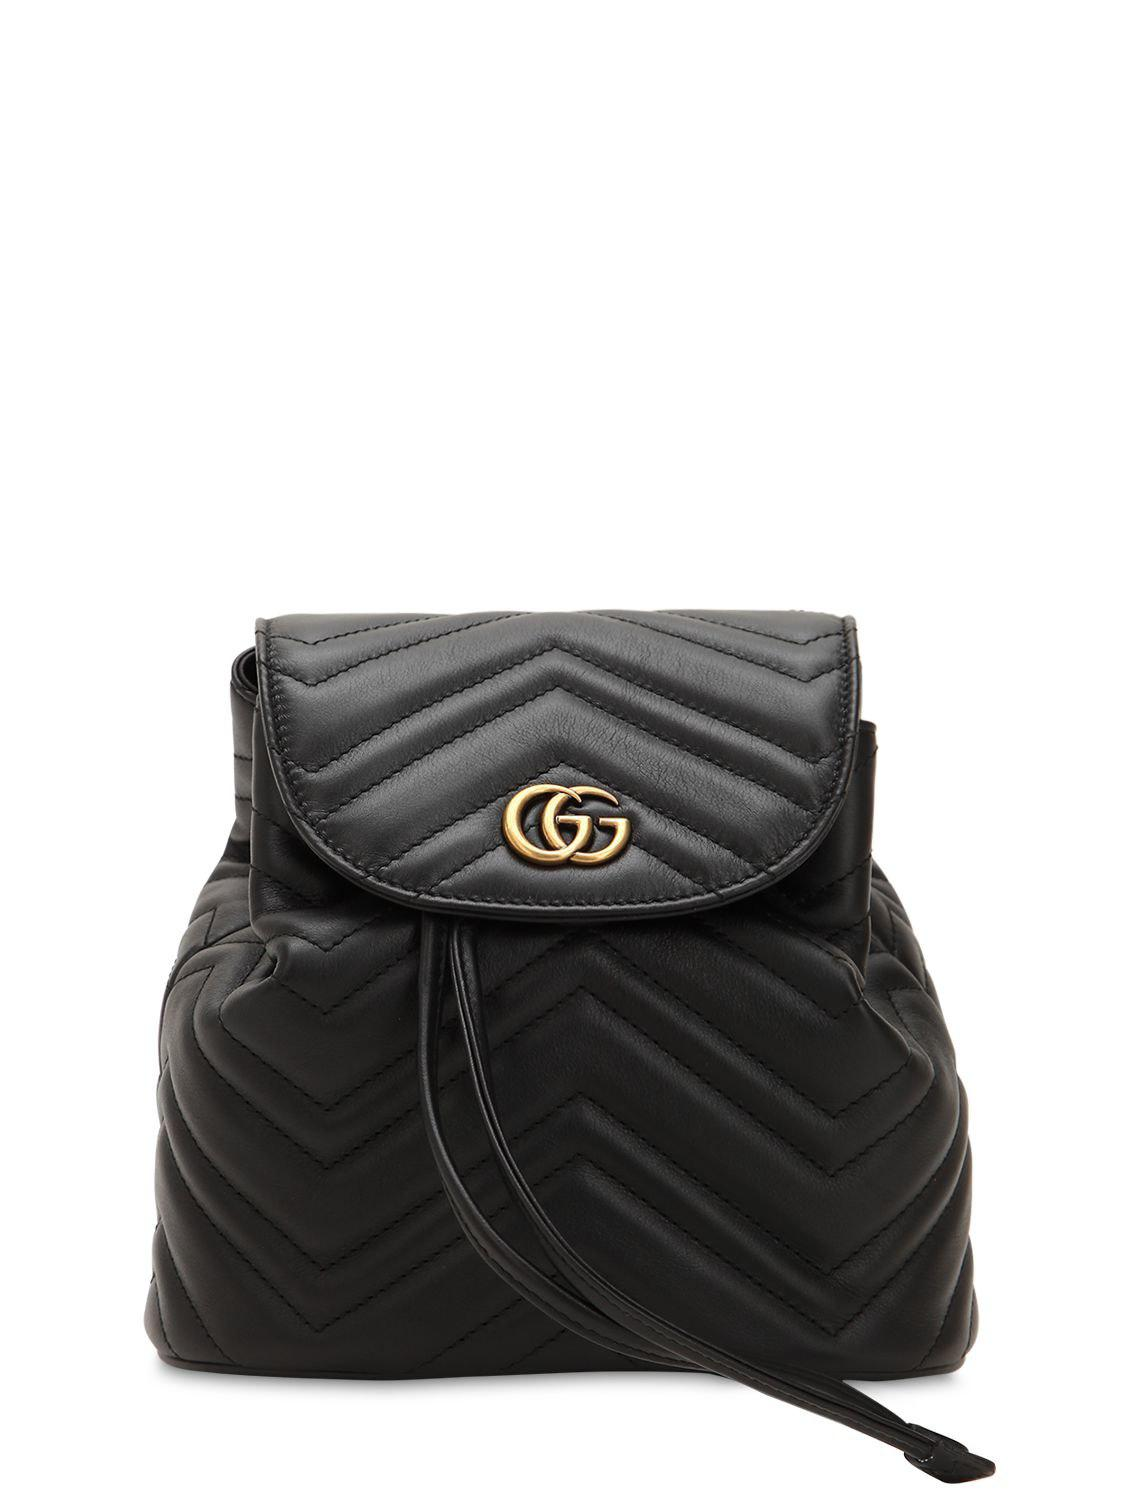 802887a2aae5e6 Lyst - Gucci Mini Gg Marmont Leather Backpack in Black - Save 25%